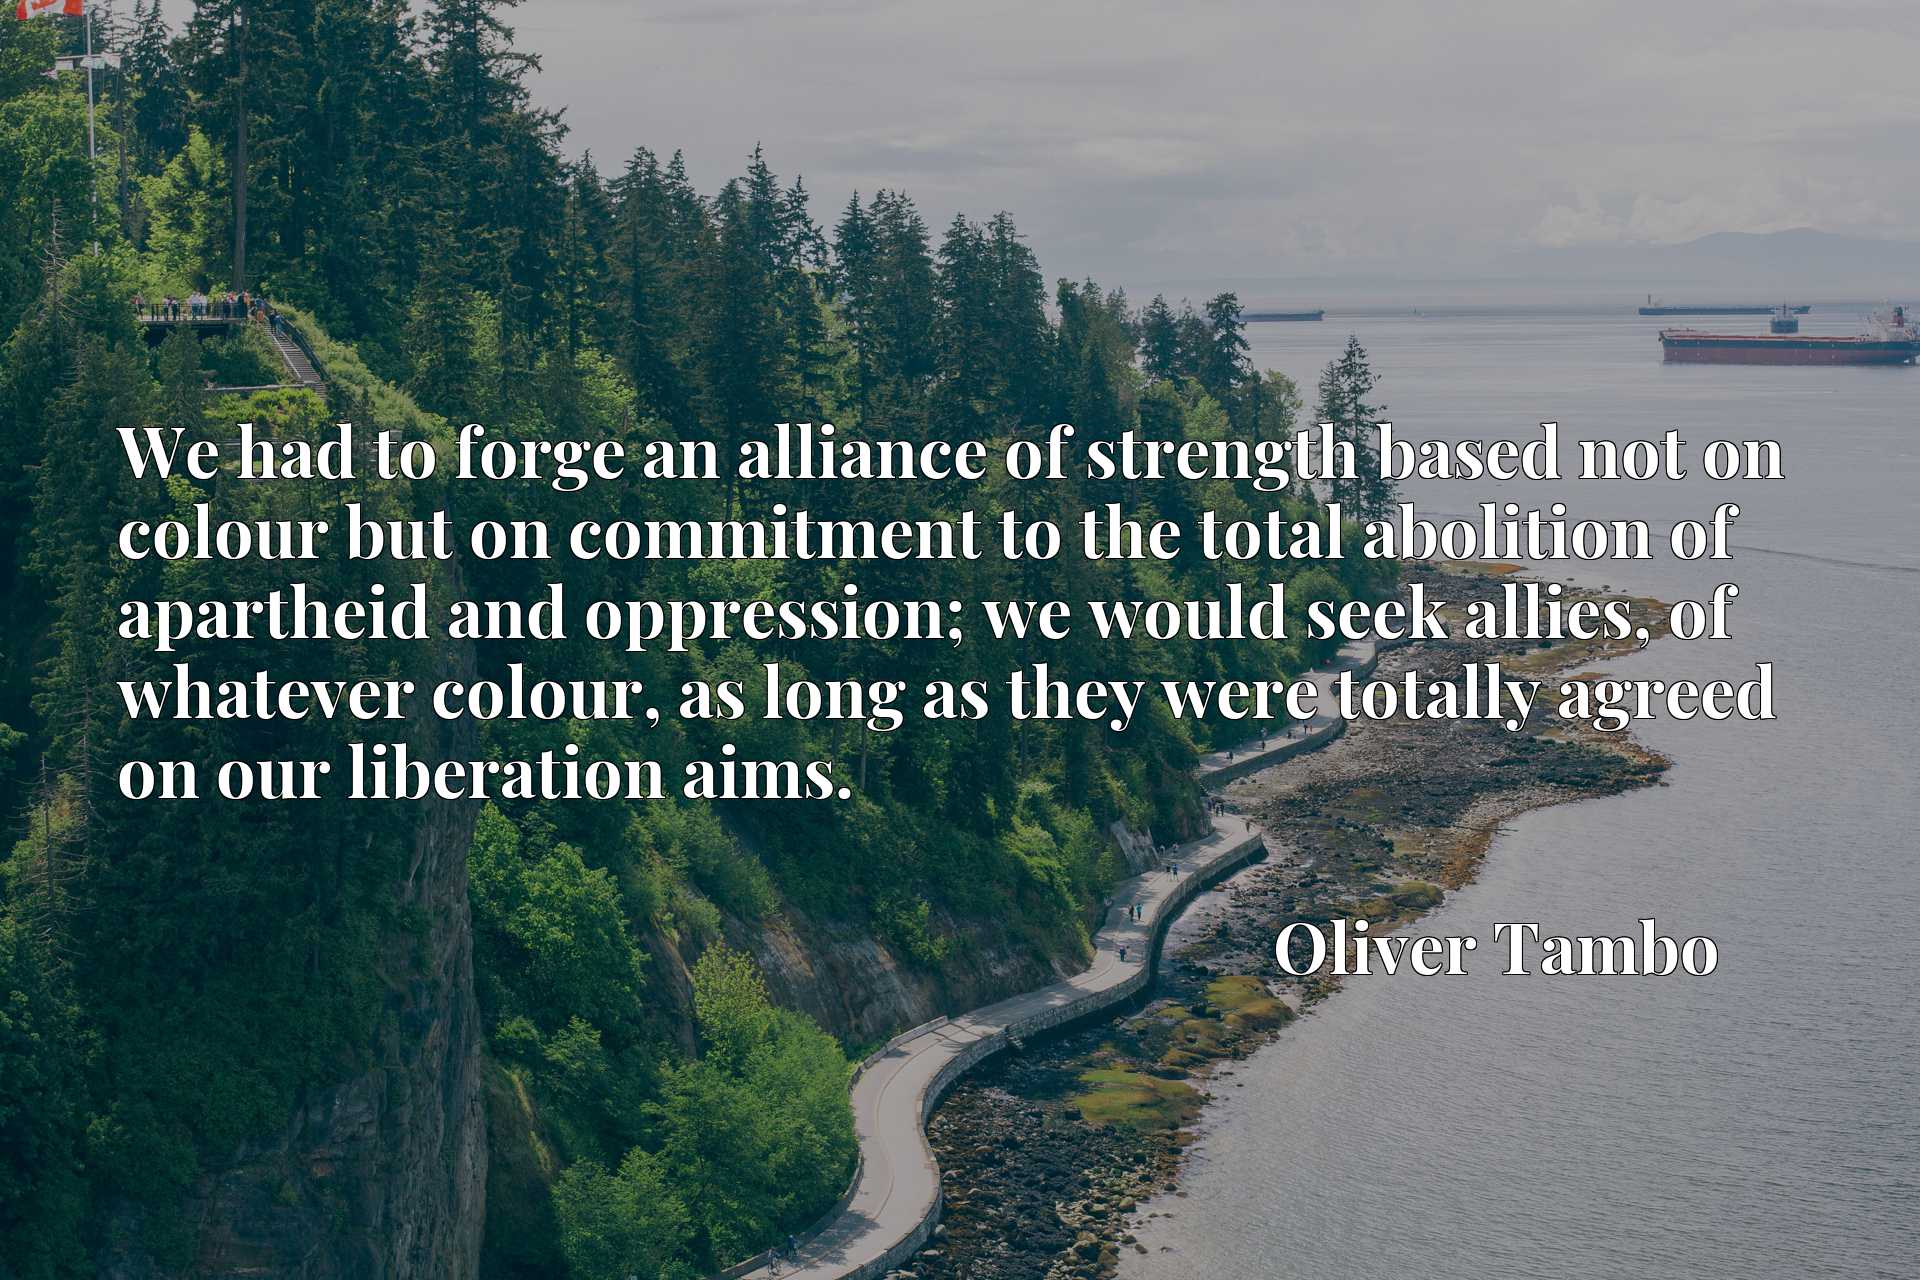 We had to forge an alliance of strength based not on colour but on commitment to the total abolition of apartheid and oppression; we would seek allies, of whatever colour, as long as they were totally agreed on our liberation aims.